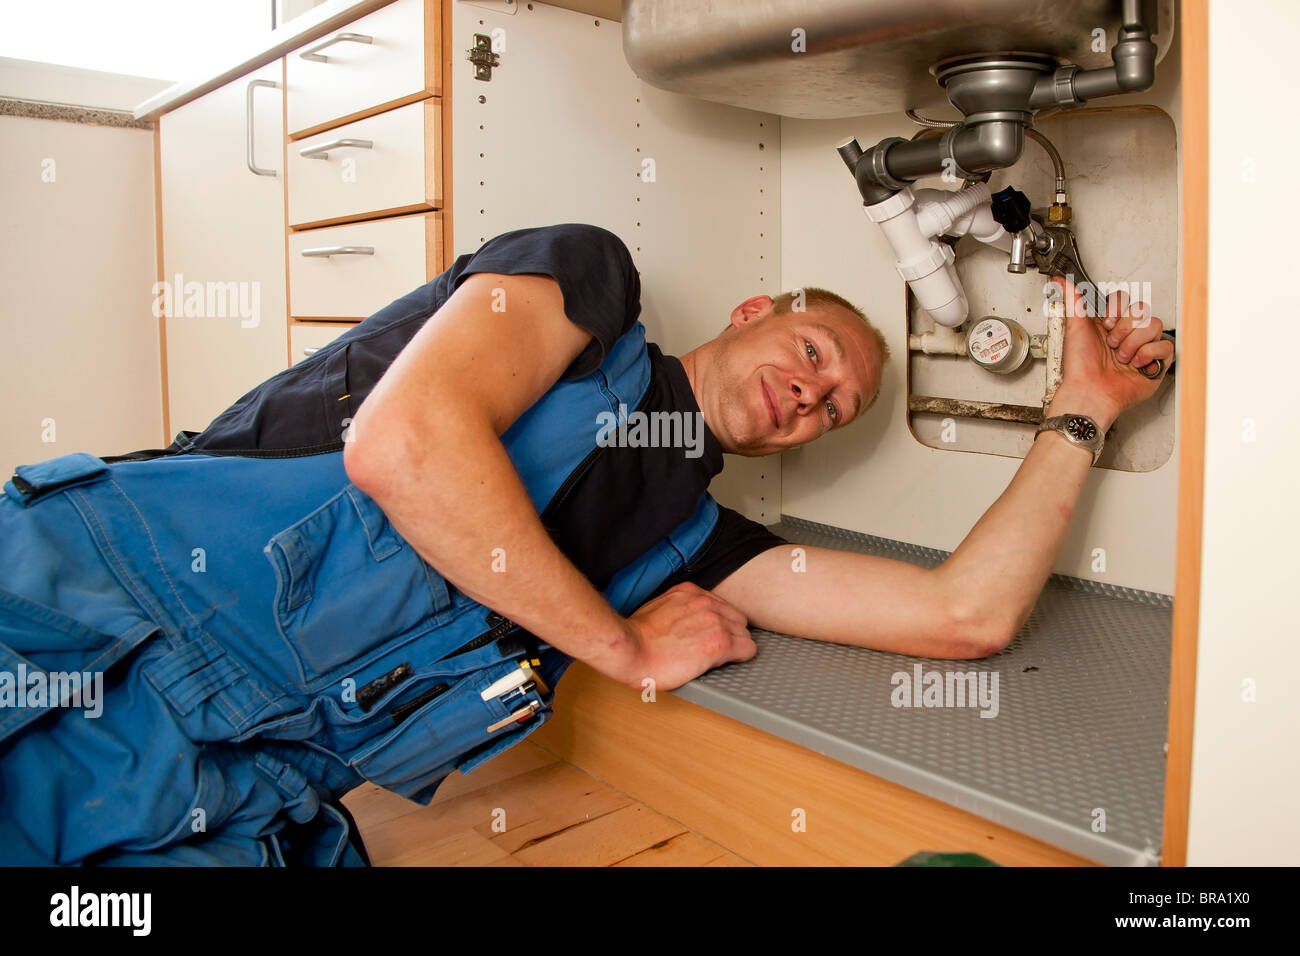 Heating and sanitary technician repairing the leaky pipes under the kitchen sink - Stock Image